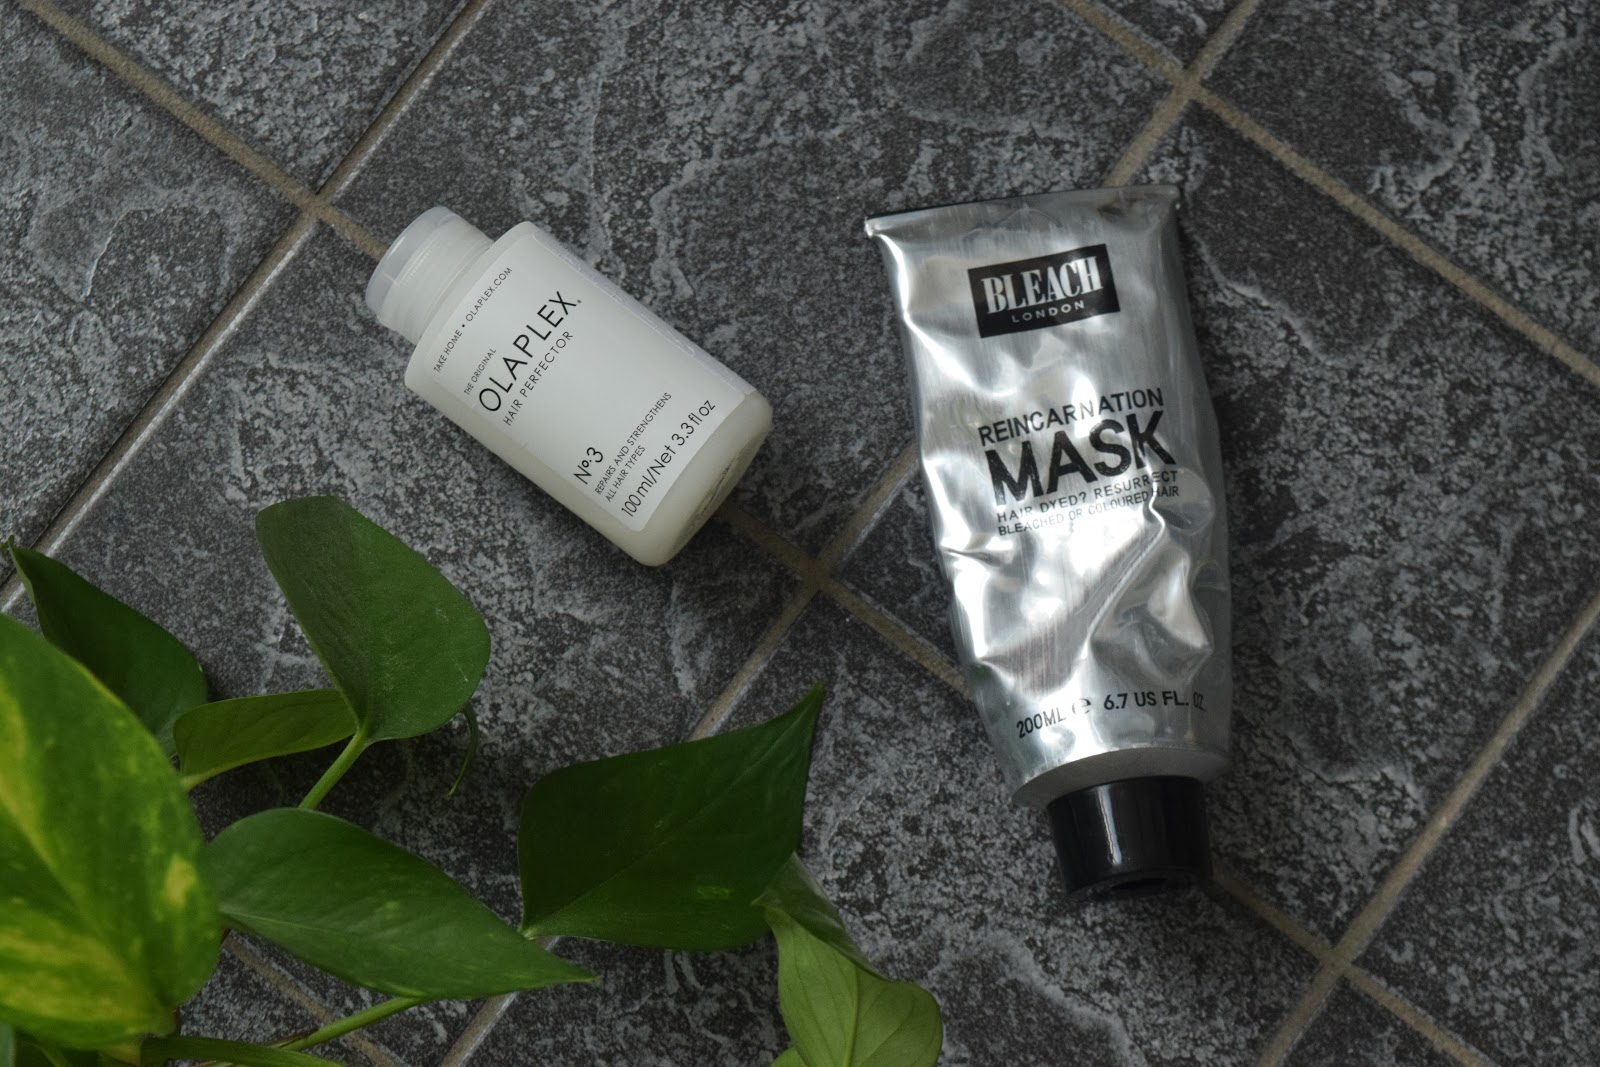 Olaplex no 3, Bleach Reincarnation mask and pothos leaves flatlay